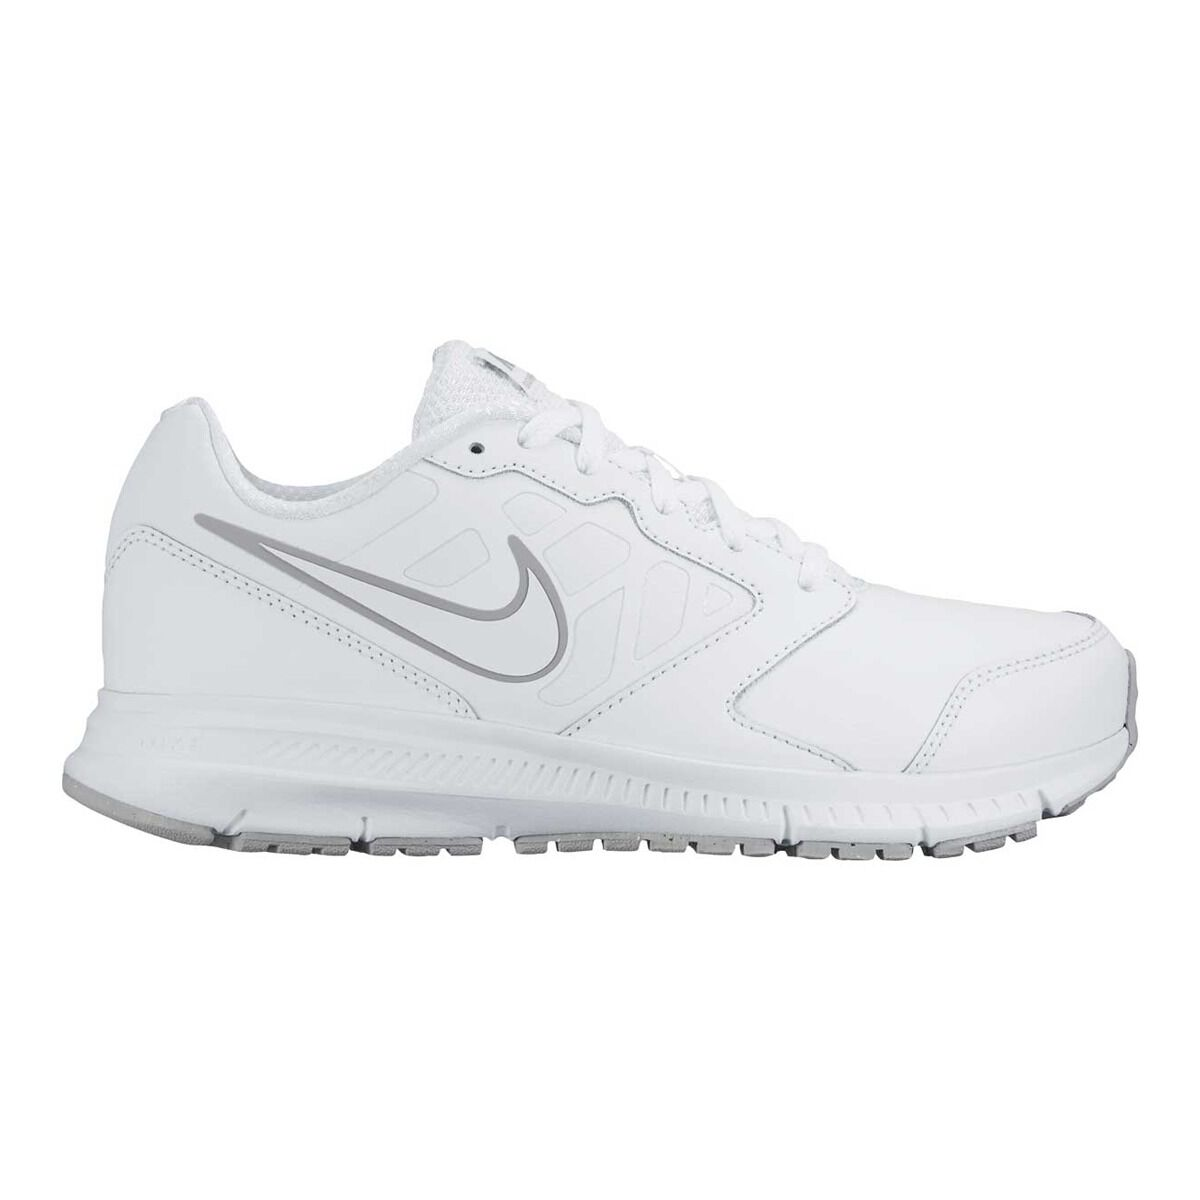 Nike Downshifter 6 Boys Running Shoes White US 3